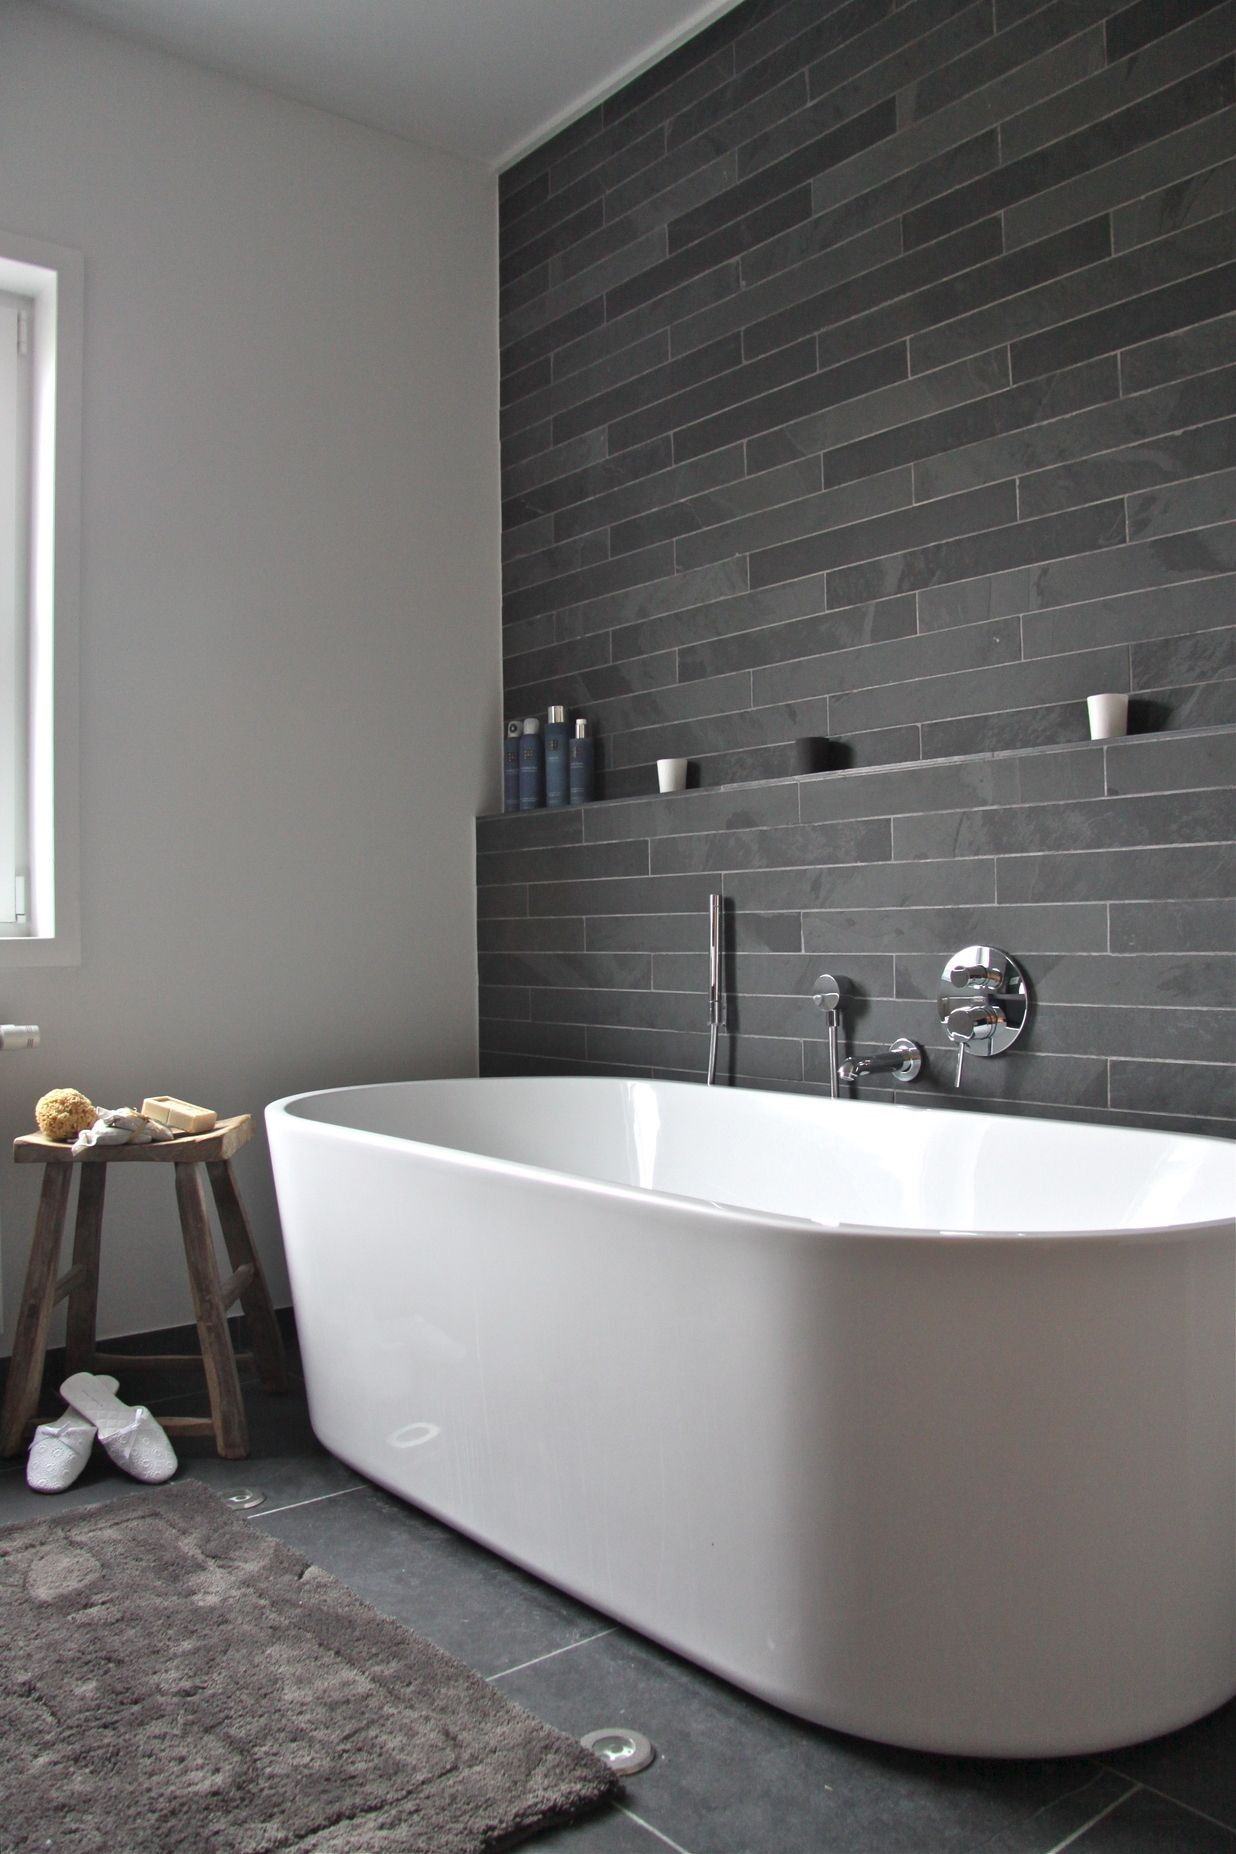 Hammam aan huis tubs walls and slate bathroom compact grey wall tile accent background paired with big white freestanding tub beside wooden bench flawless white grey bathroom decoration dailygadgetfo Gallery